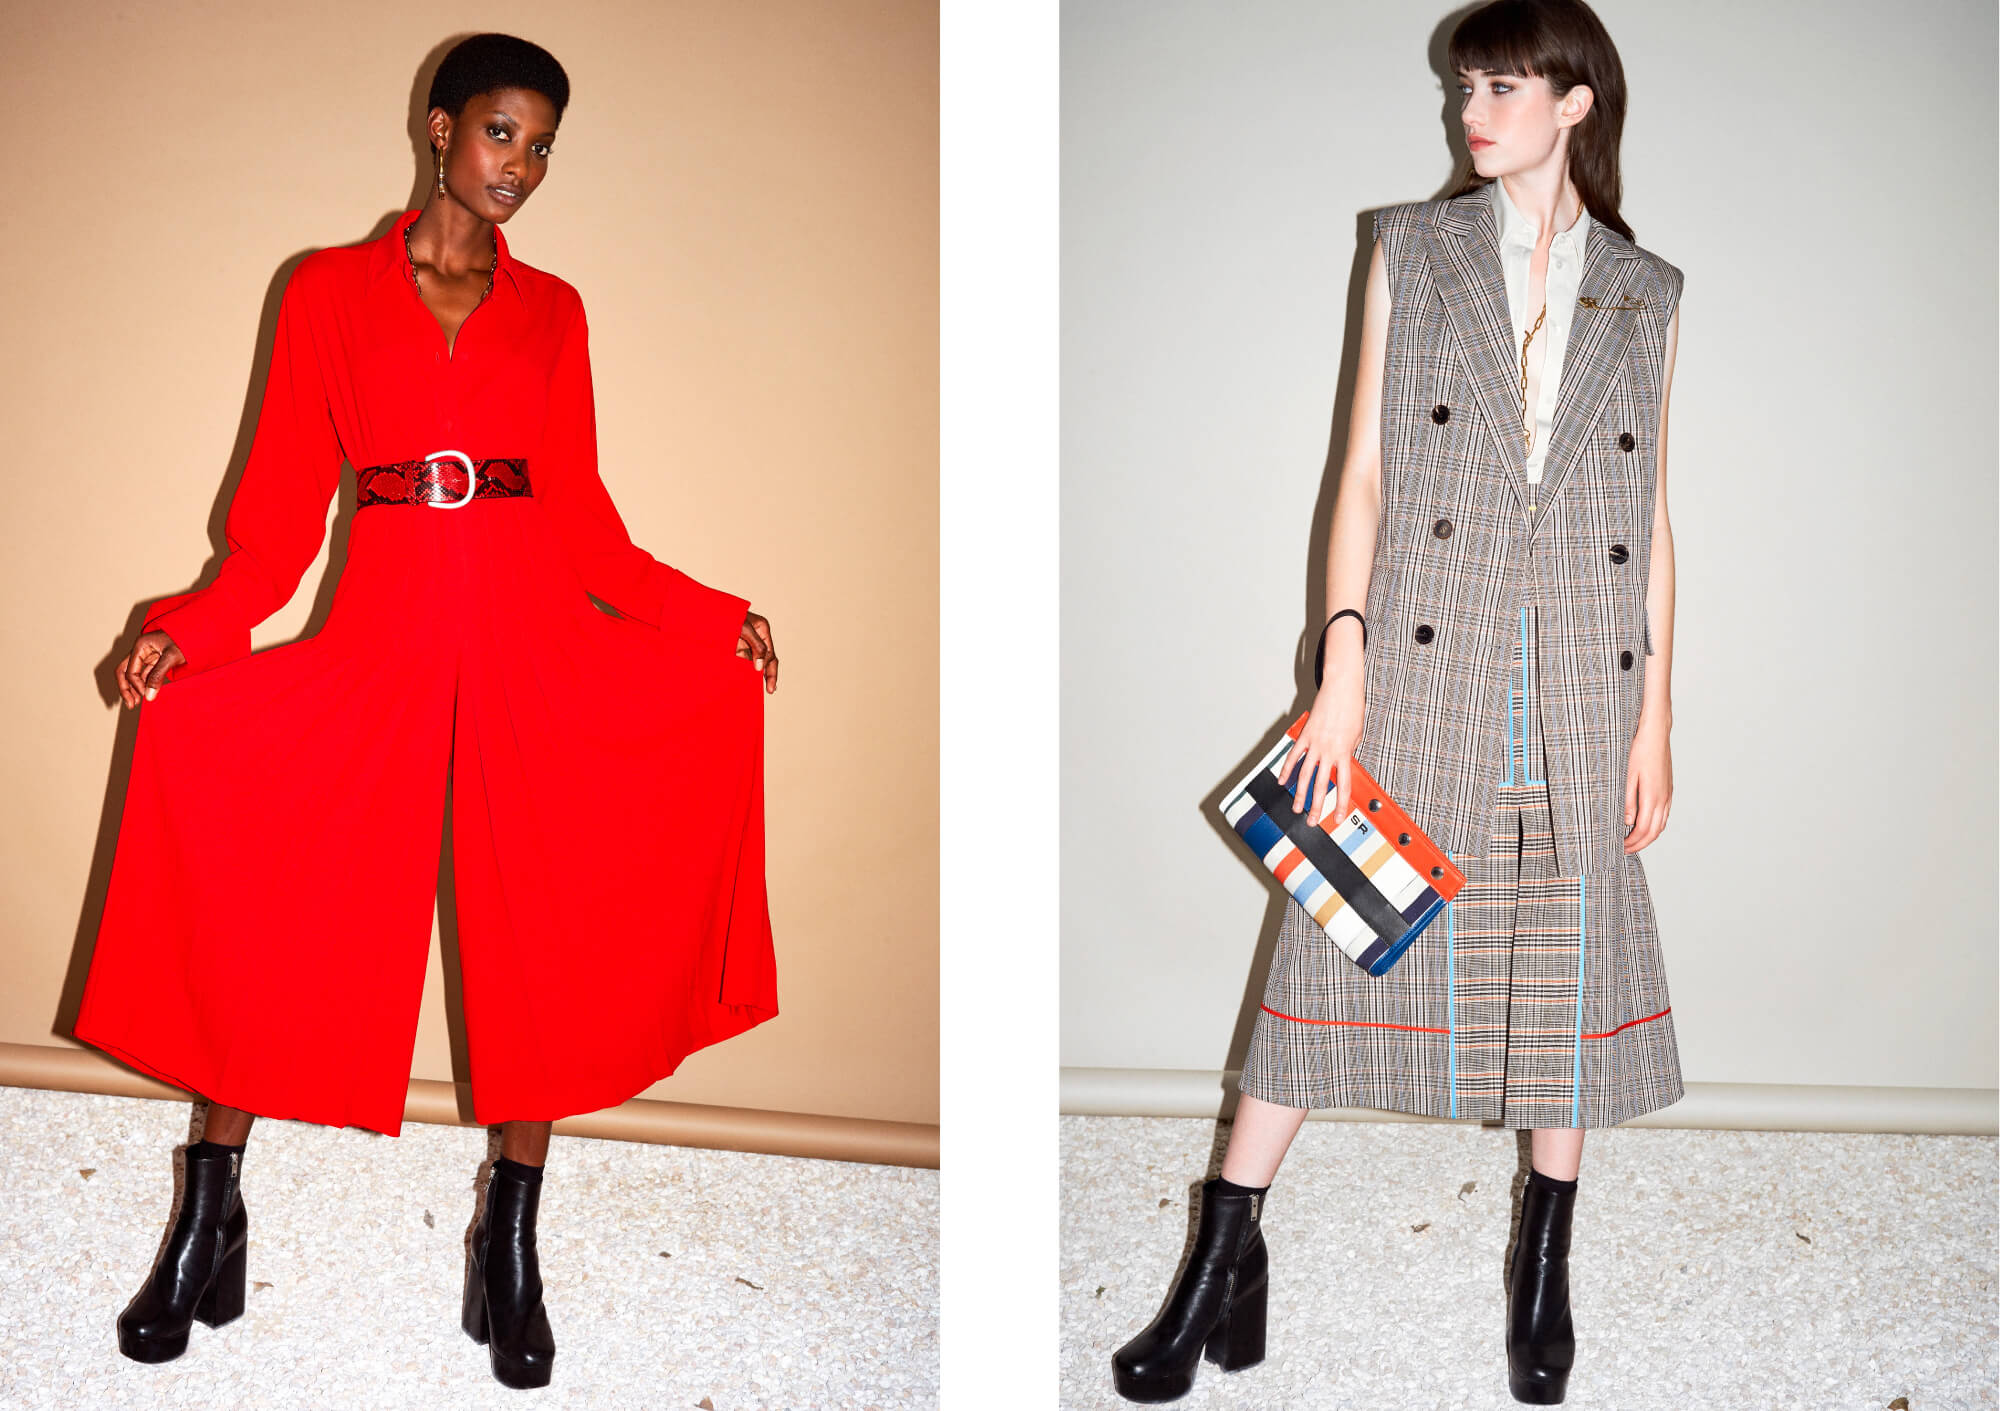 Sonia Rykiel Resort 2019 Collection Grace Melbourne